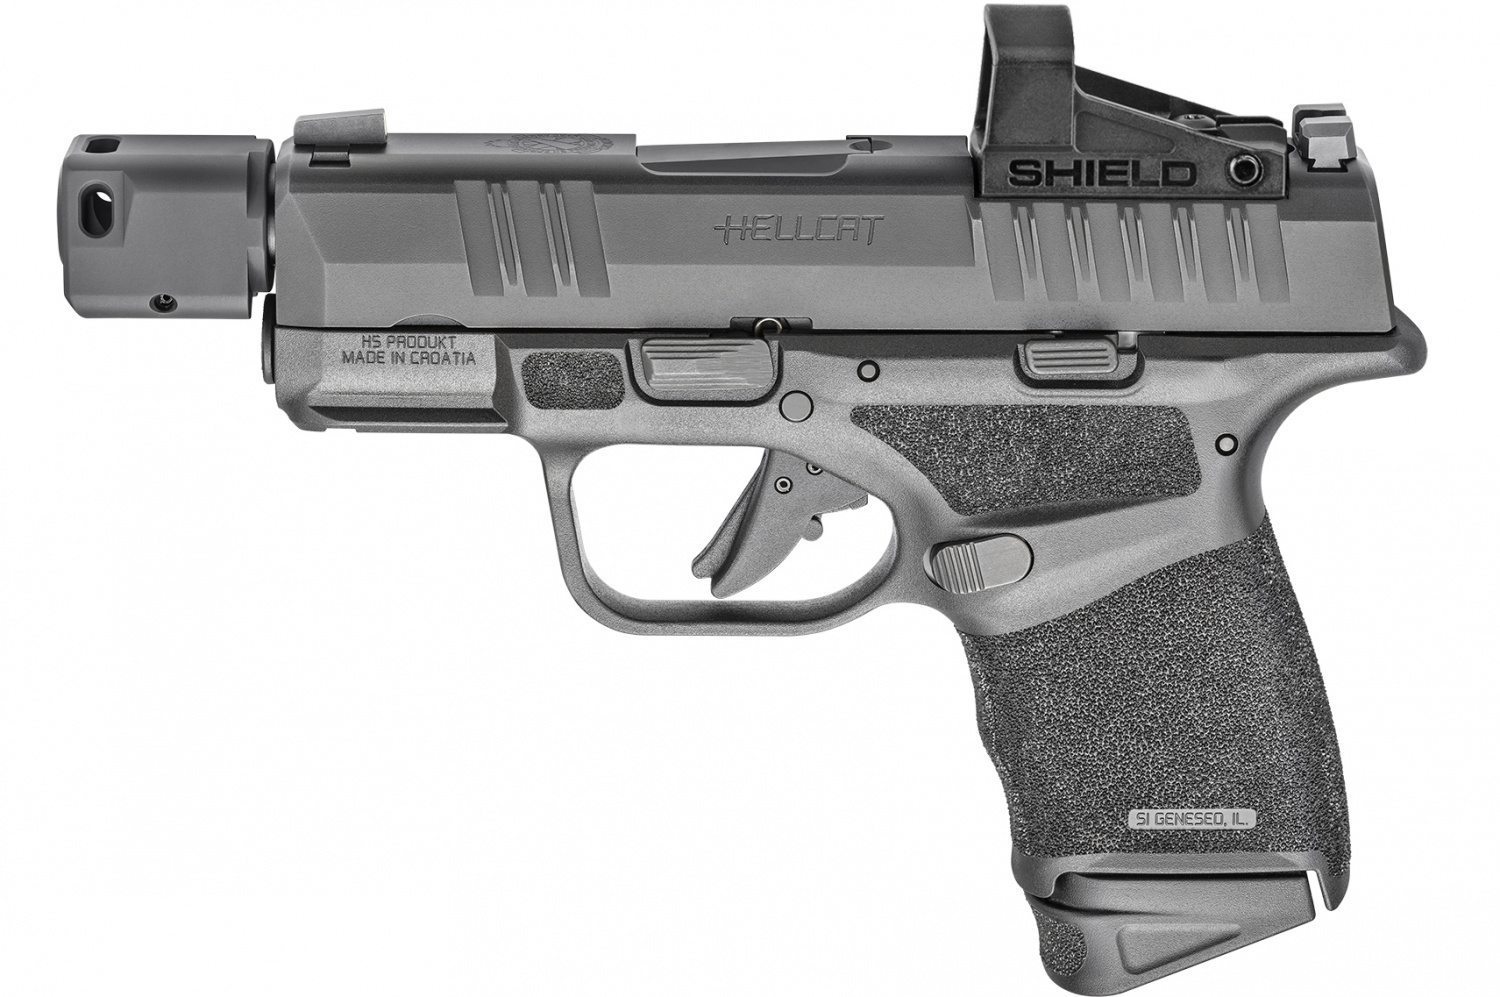 In case you're like me and don't prefer the Hex red dot, Springfield sells Hellcat RDPs that come with a Shield SMSc optic installed instead.